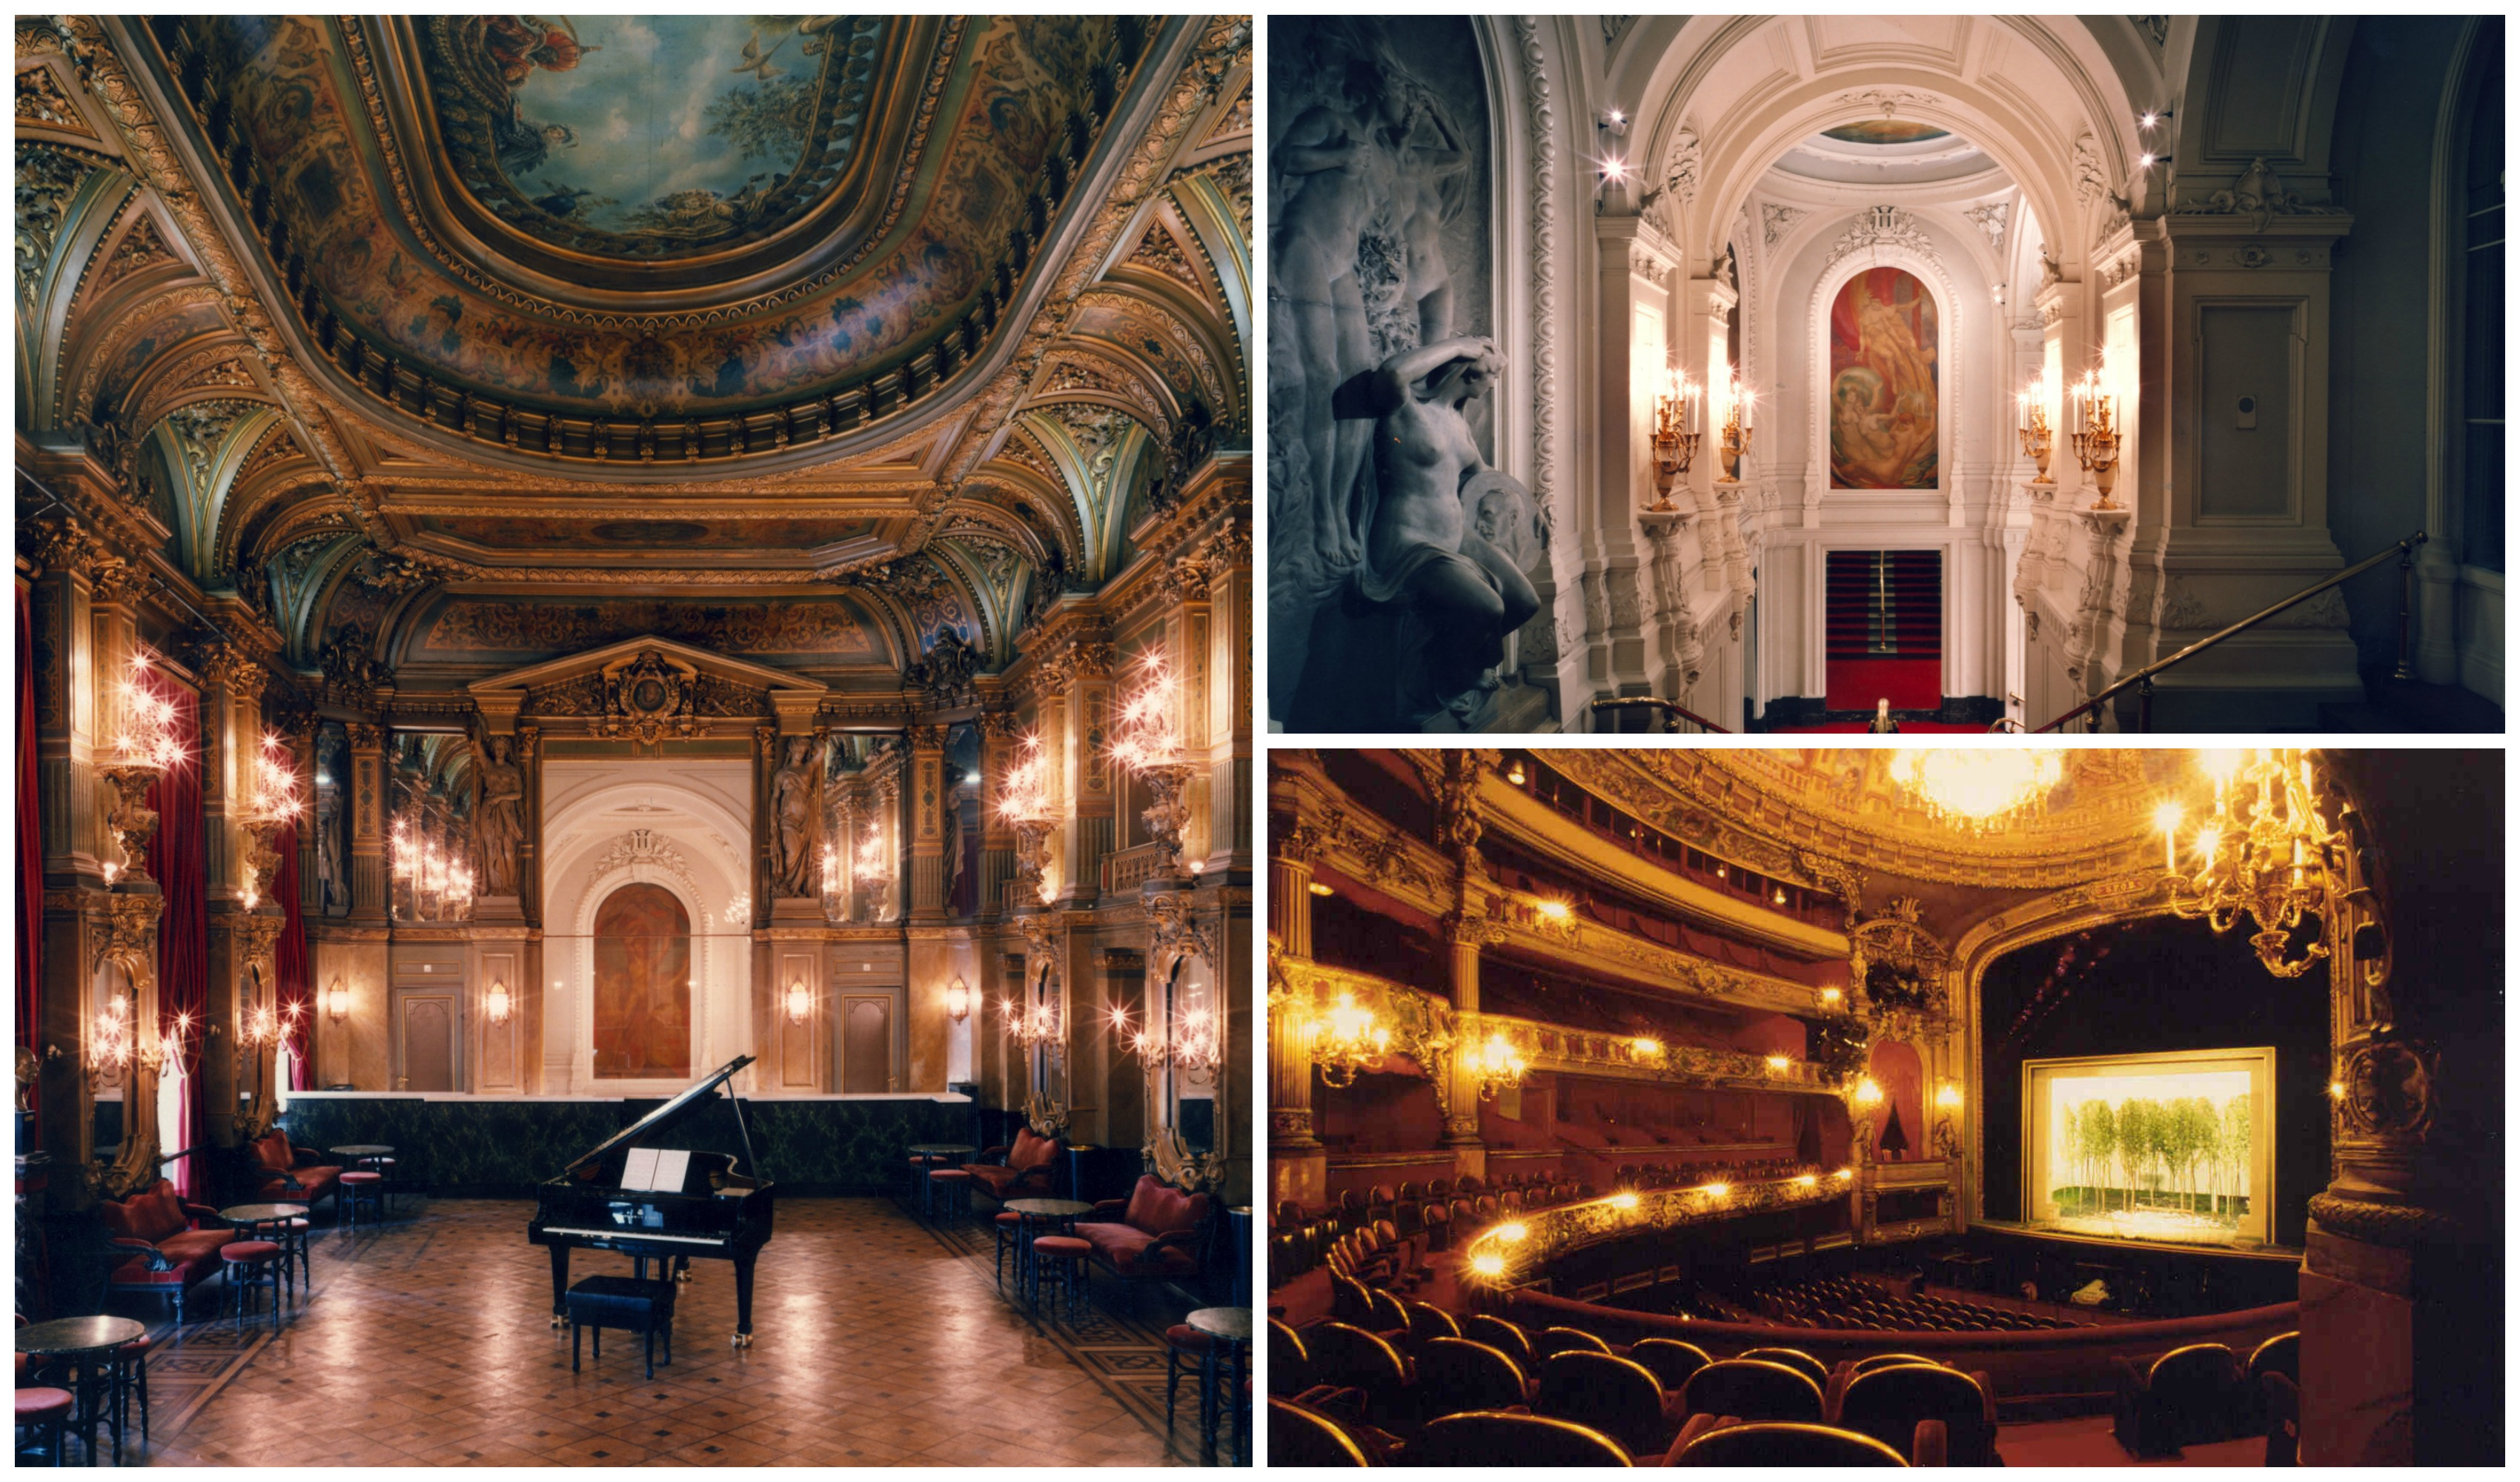 Grand Foyer La Monnaie : The history of la monnaie in minute